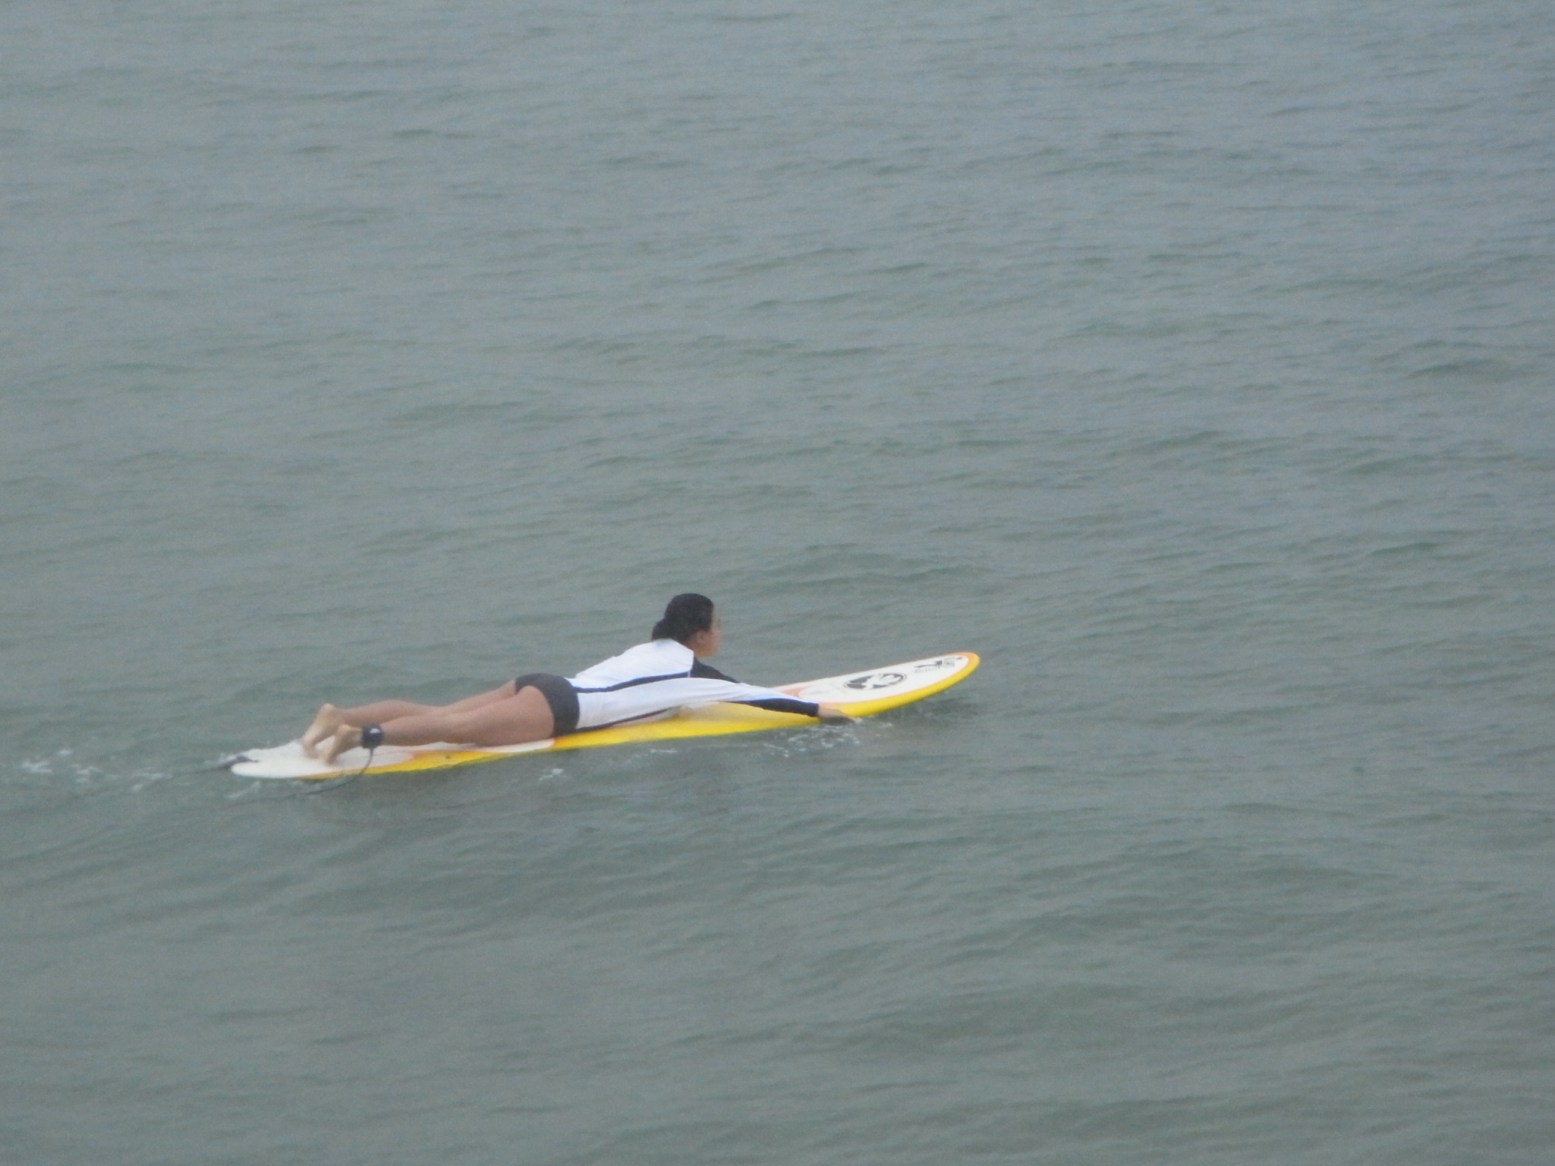 Surfing in Yomitan, Okinawa in 2012